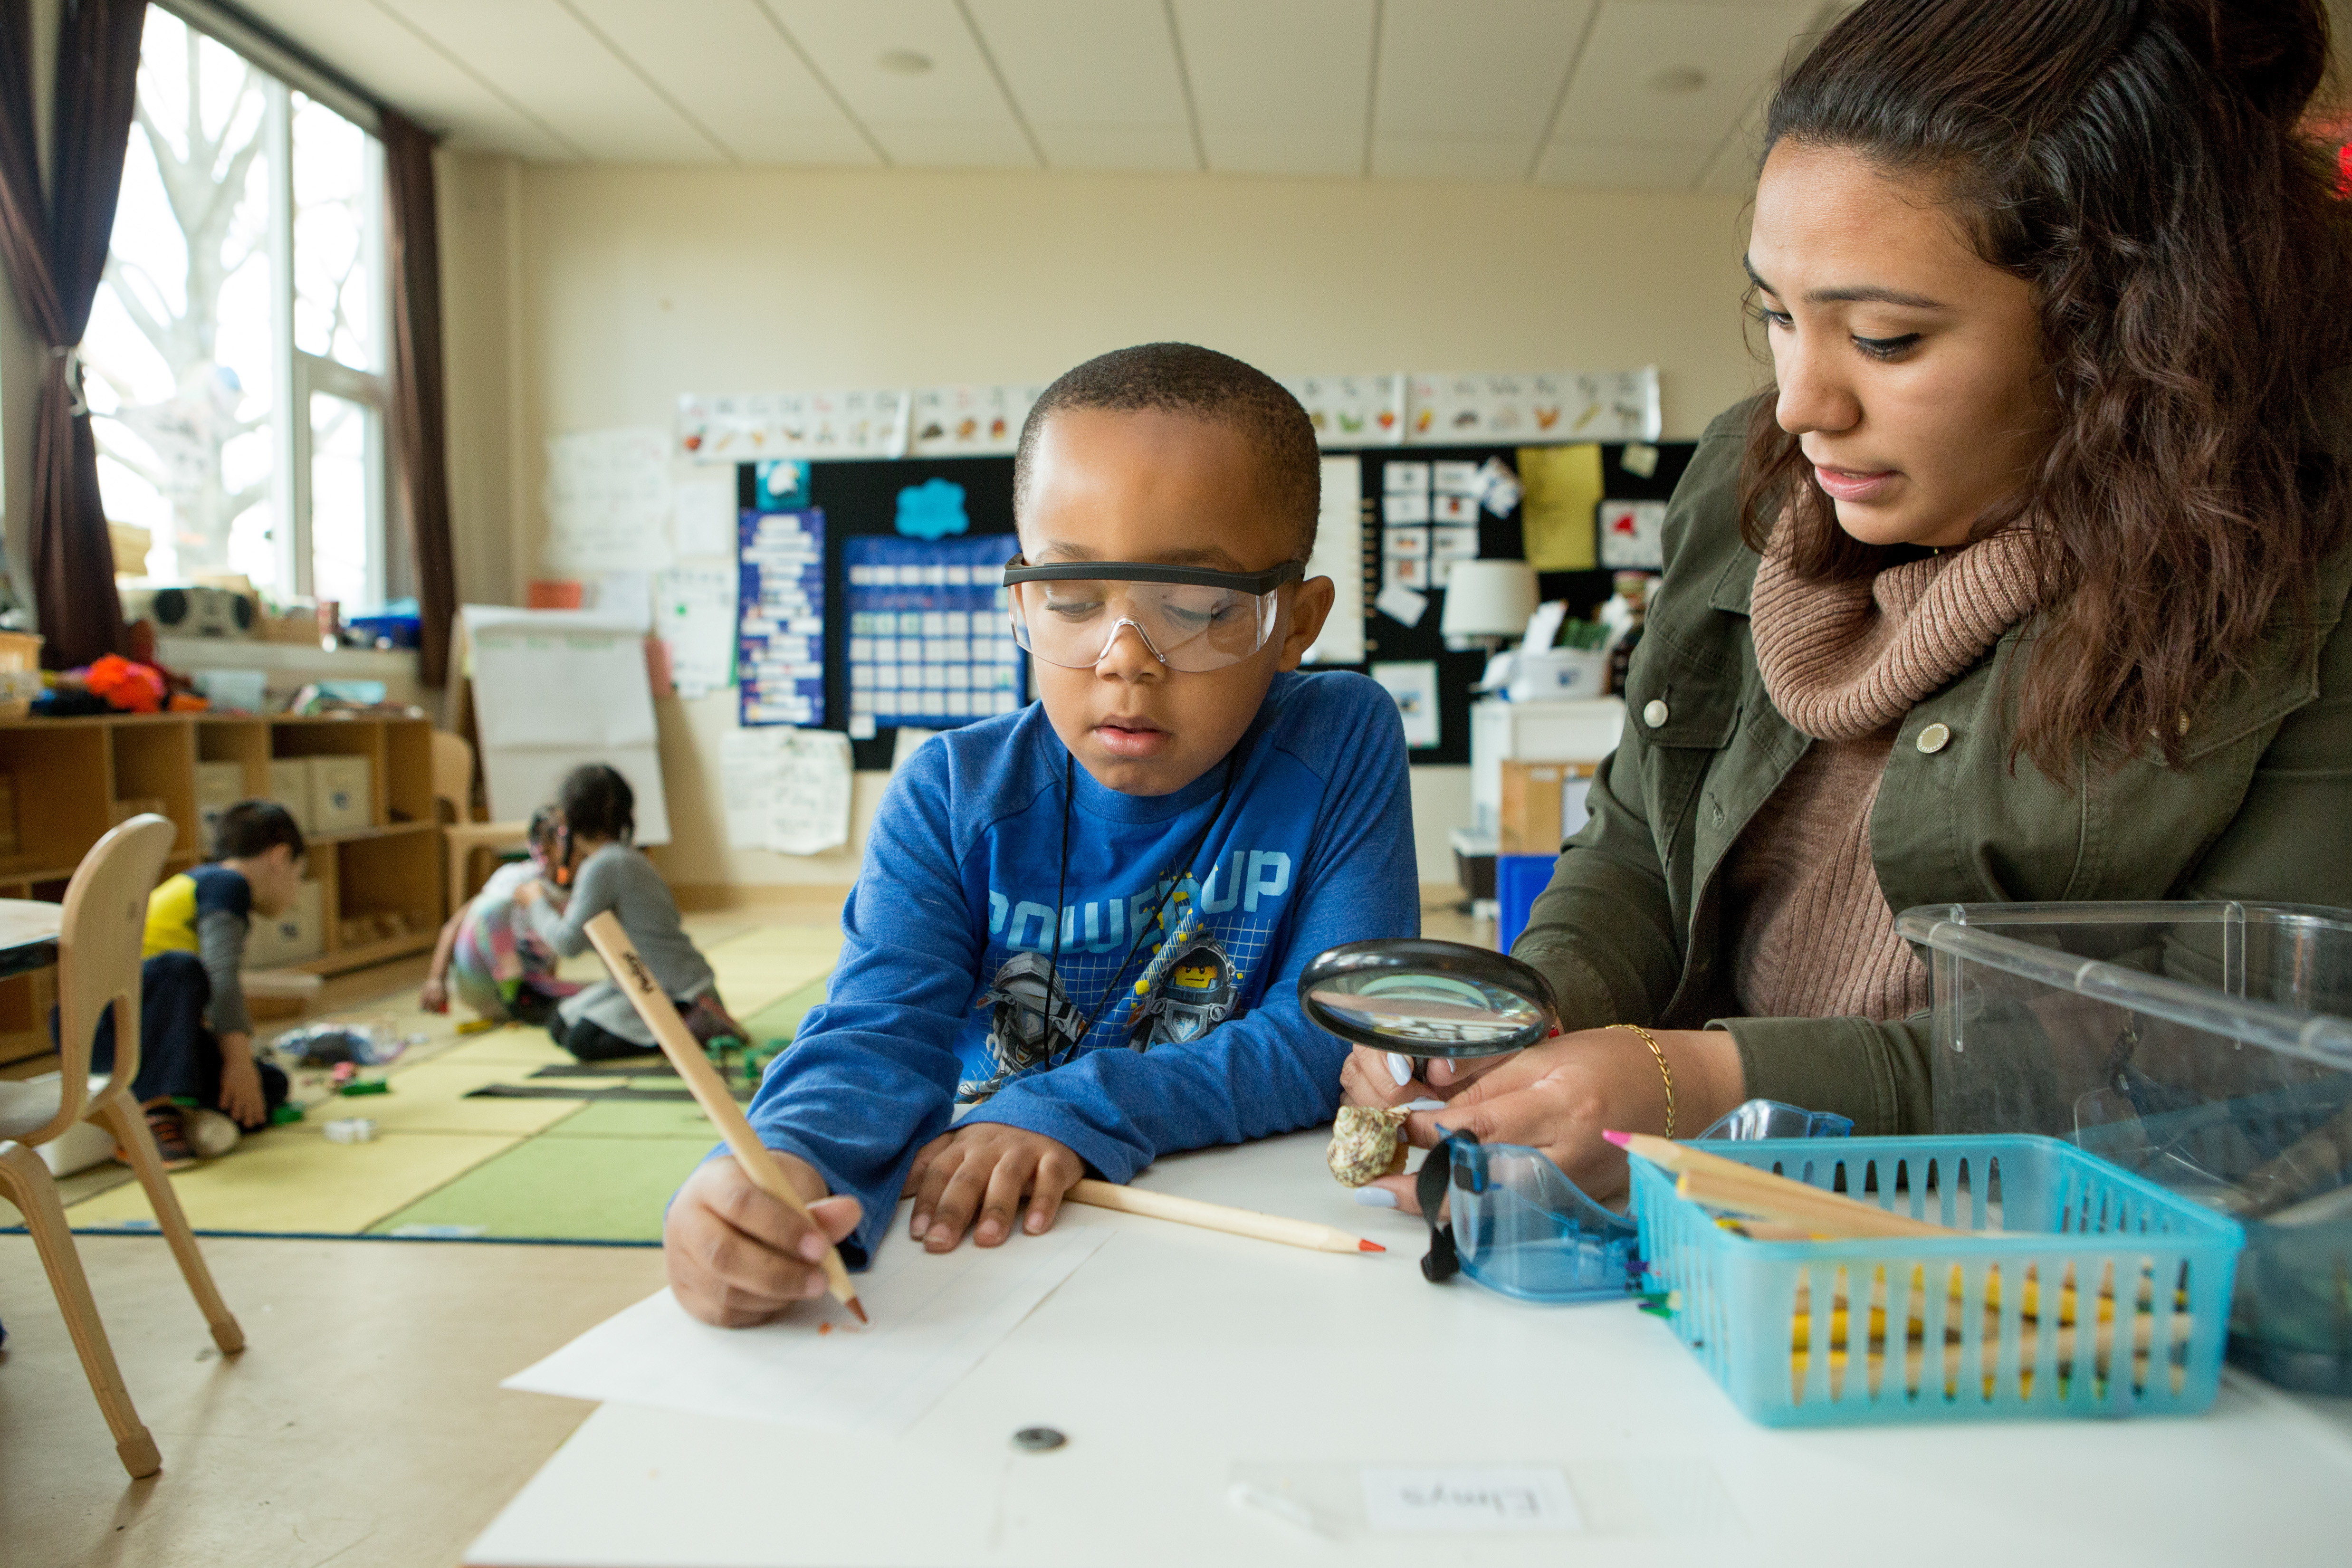 A teacher sits at a table with a kindergarten boy who is looking at a paper using a magnifying glass.